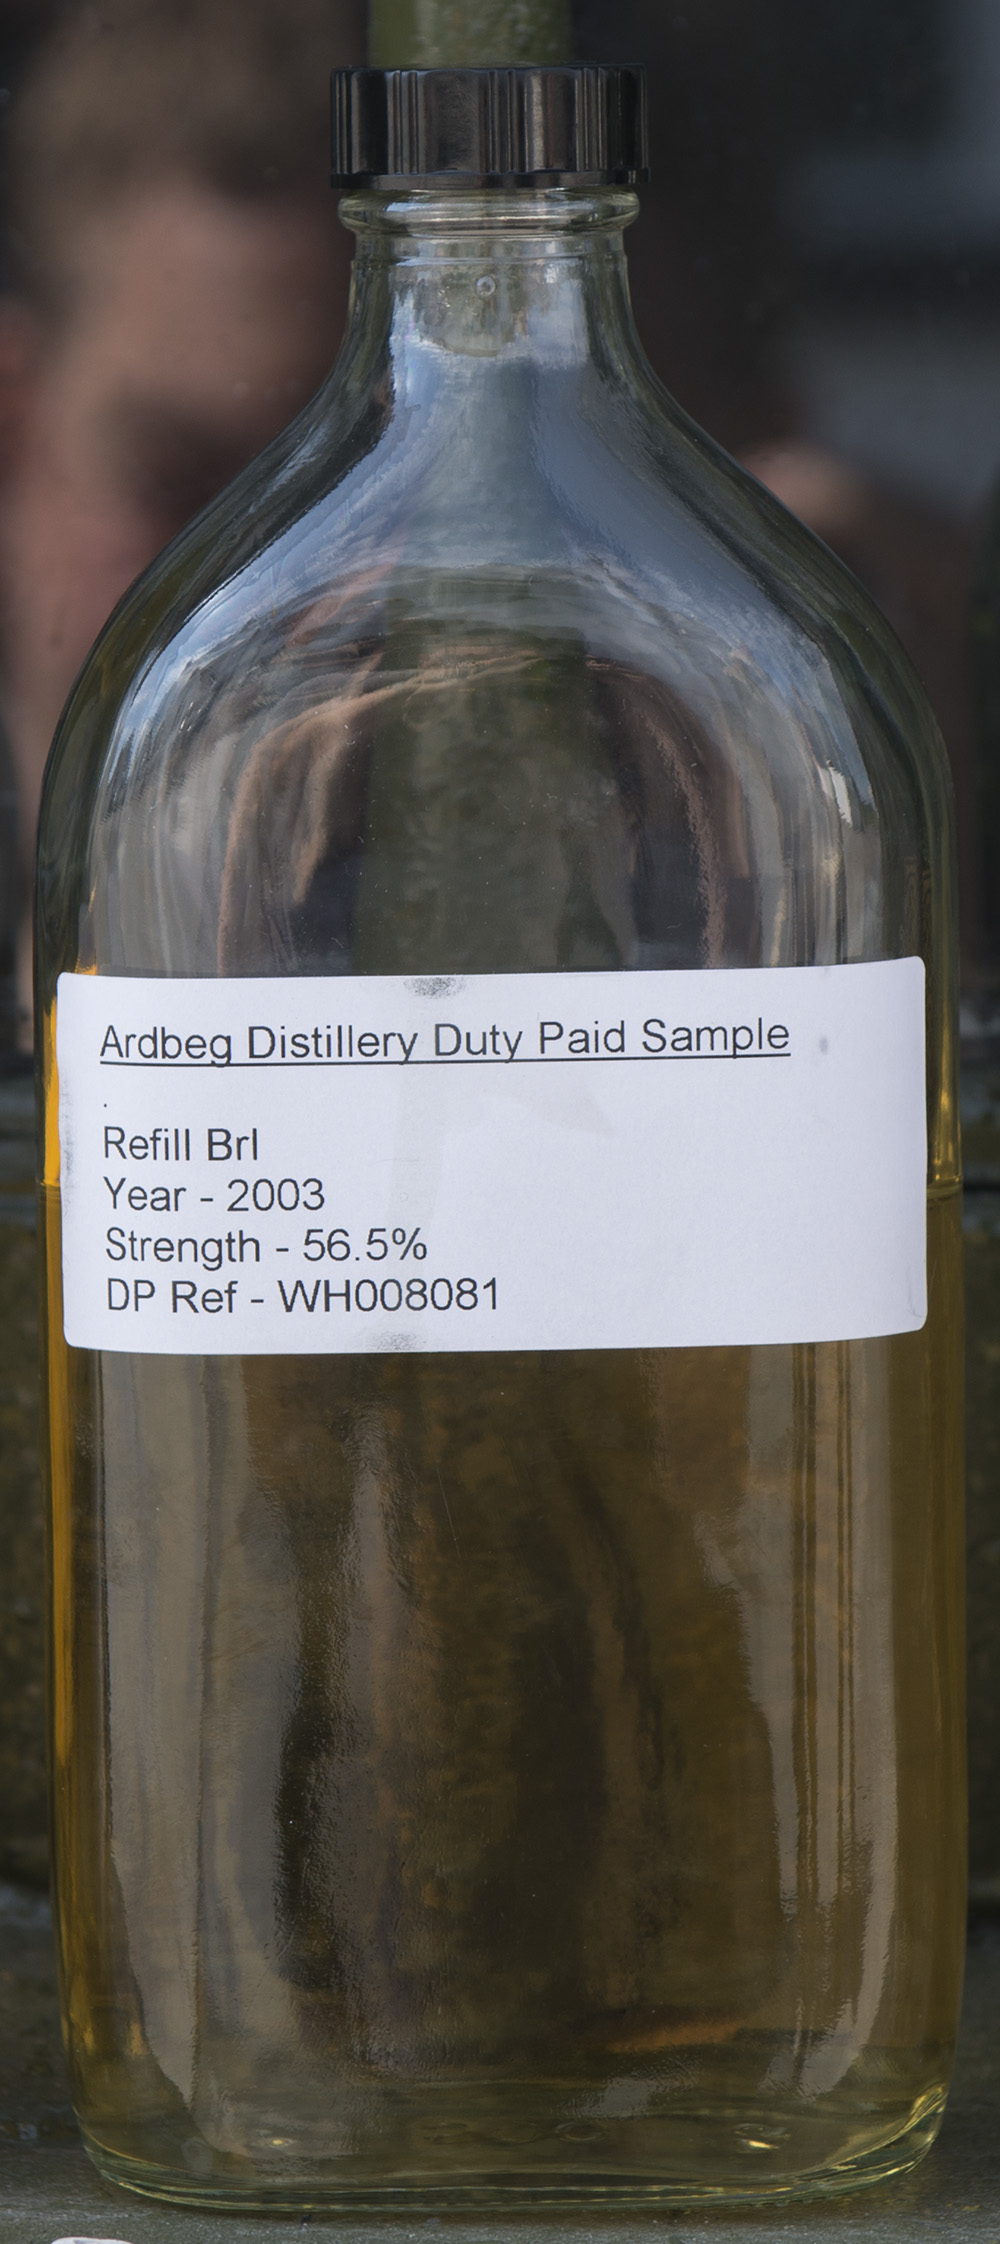 Billede: Ardbeg 2003 - cask sample from refill bourbon cask.jpg